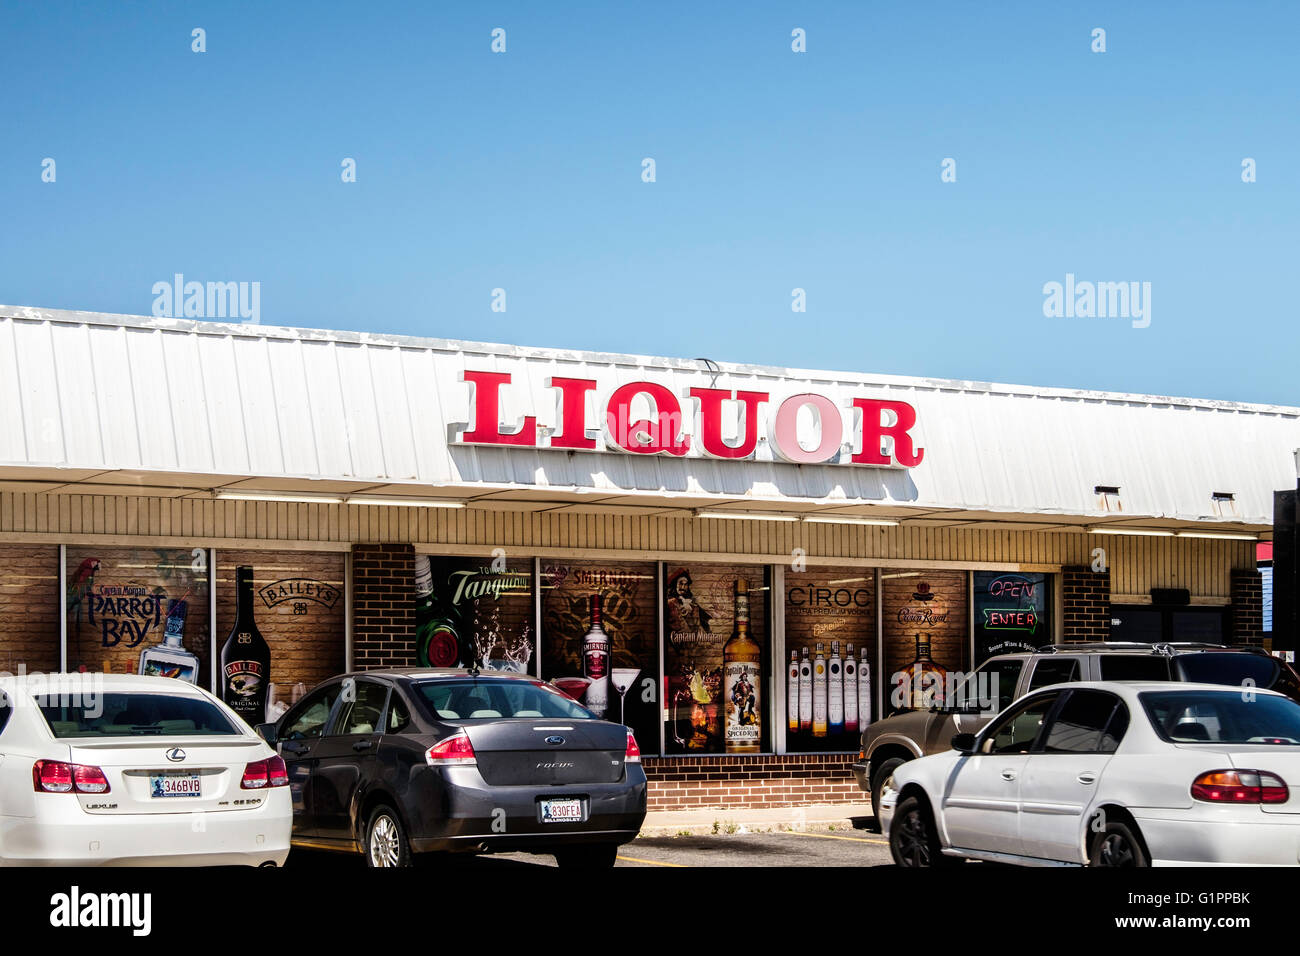 The storefront and entrance to a liquor store in a strip mall. Oklahoma, USA. - Stock Image